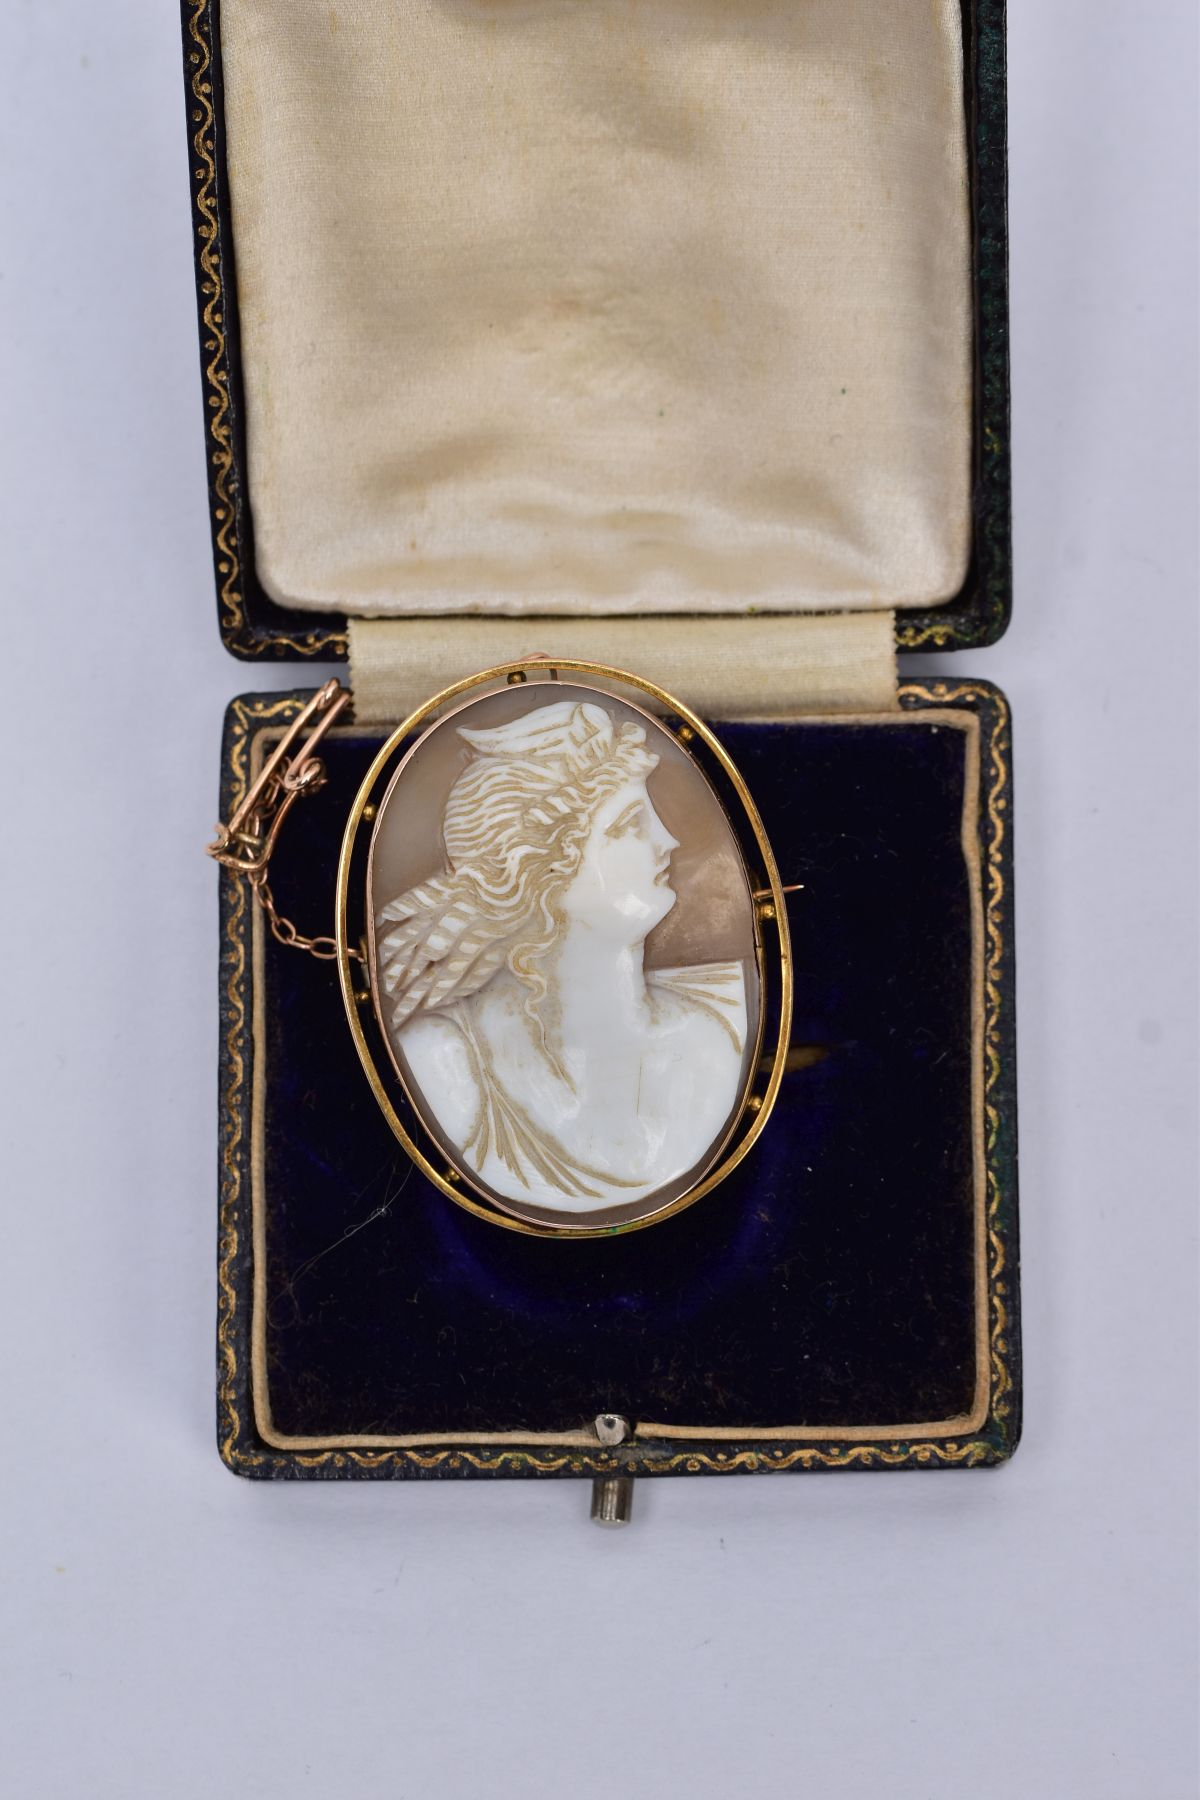 A GOLD CAMEO BROOCH, depicting a maiden in profile, measuring approximately 42mm x 33mm, stamped '